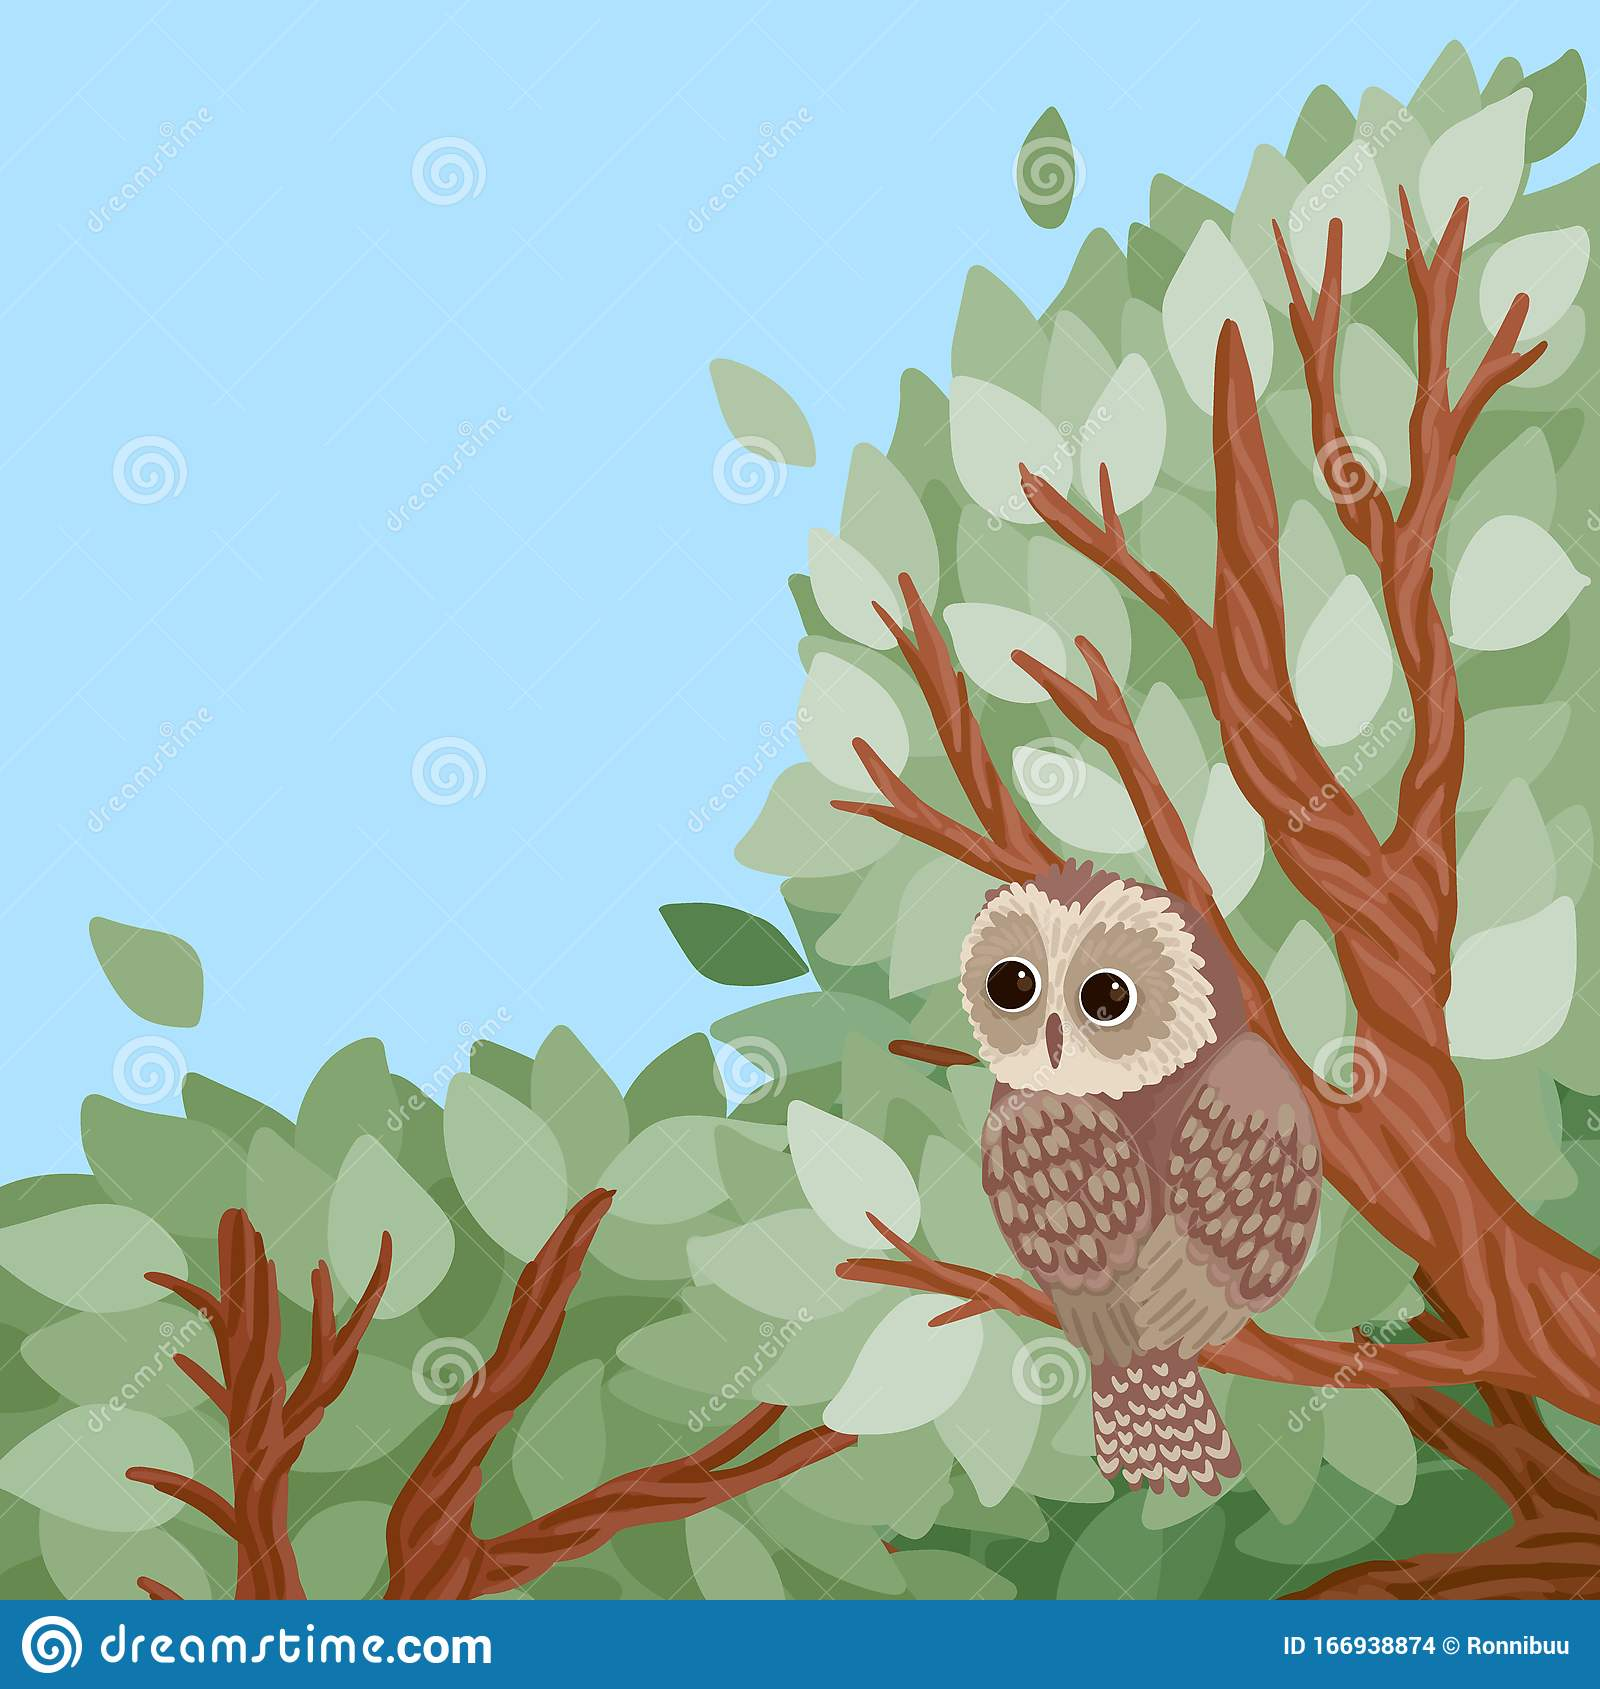 Owl Sitting On A Tree Branch In The Forest Cute Children Vector Illustration Stock Vector Illustration Of Bright Drawn 166938874 Tree cartoon owl cartoon tree cartoon owl tree owl background decoration symbol colorful element cute trees icon decorative natural animal ornament sketch backdrop nature drawing outline owls animals color plant season decor vector background artistic branch bright bird vector cartoon. https www dreamstime com owl sitting tree branch forest cute children vector illustration green trees summer day animal nature bird image166938874